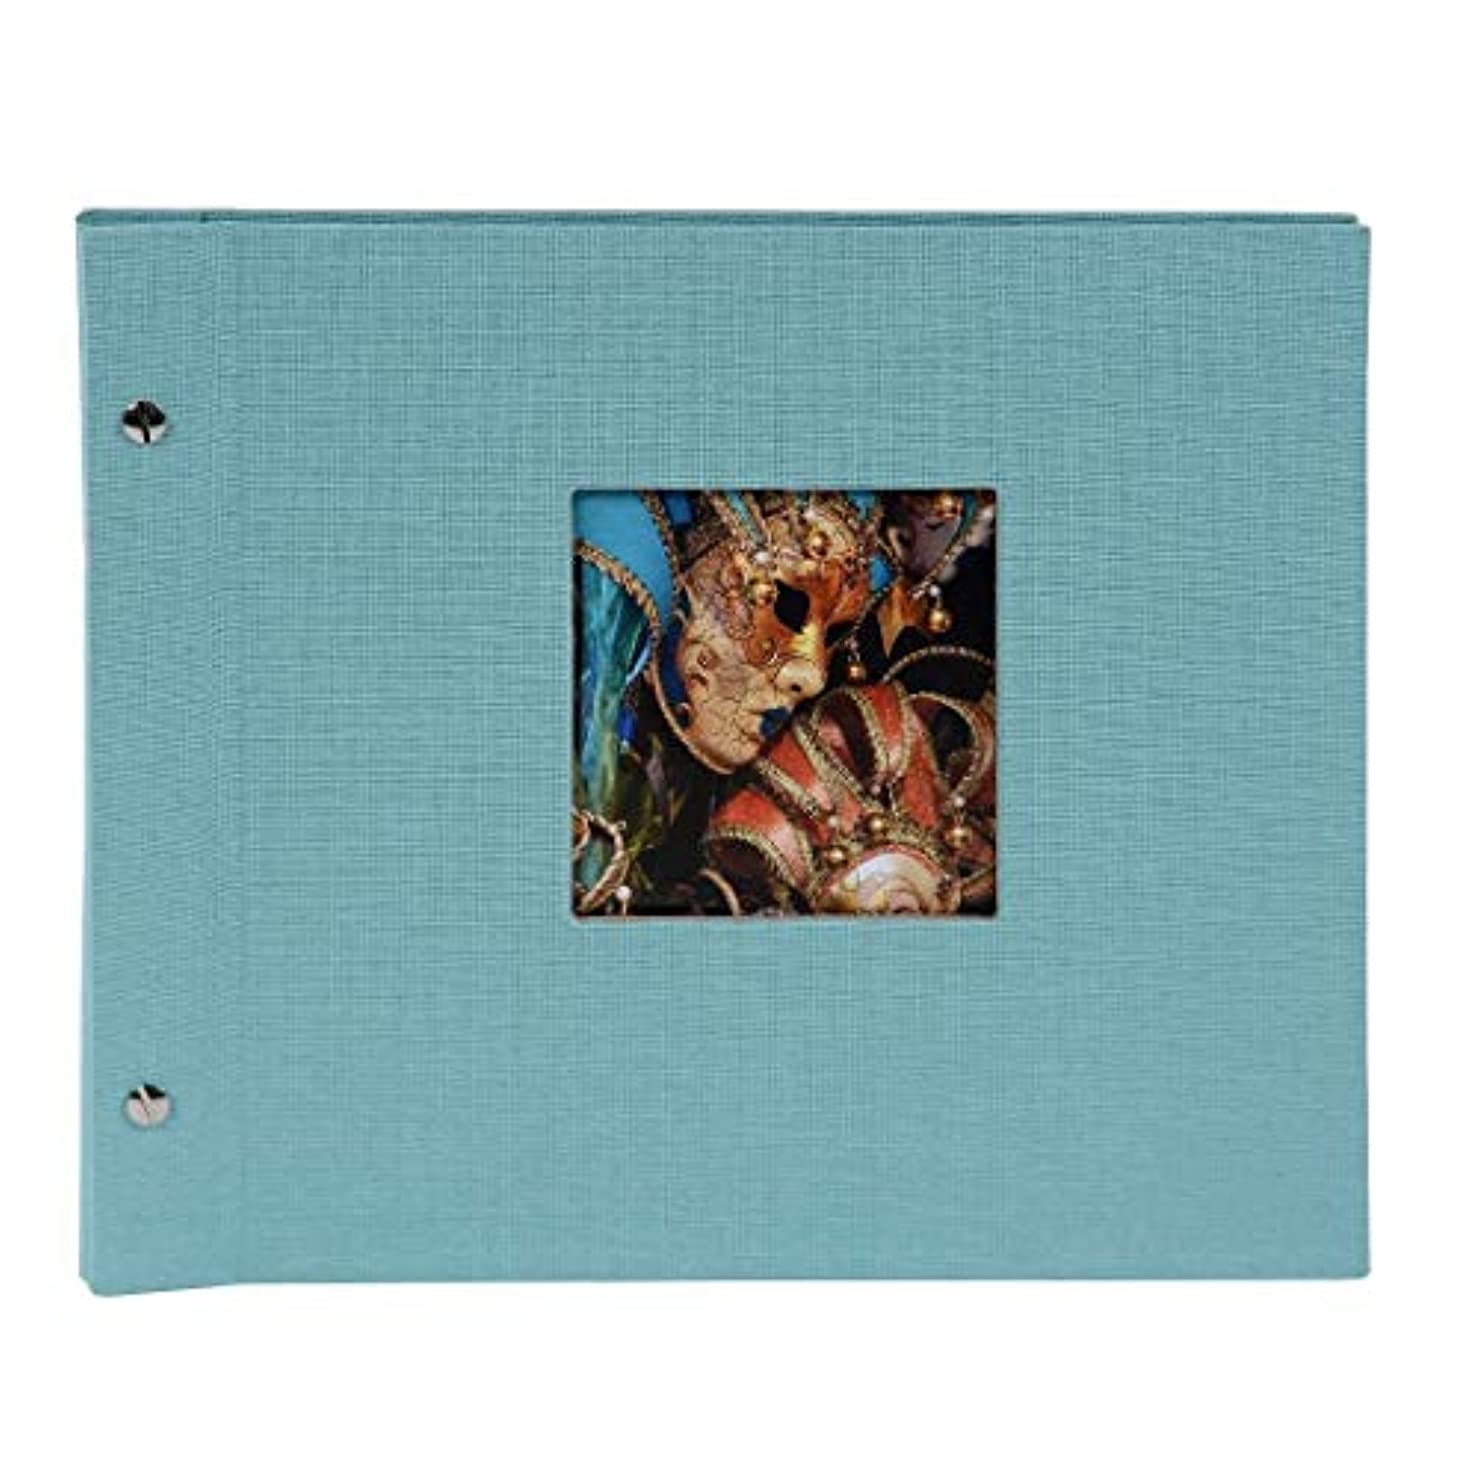 Goldbuch Spiral Album Bella Vista, 35?x 30?cm 40?Black Sheets Aqua?–?25507